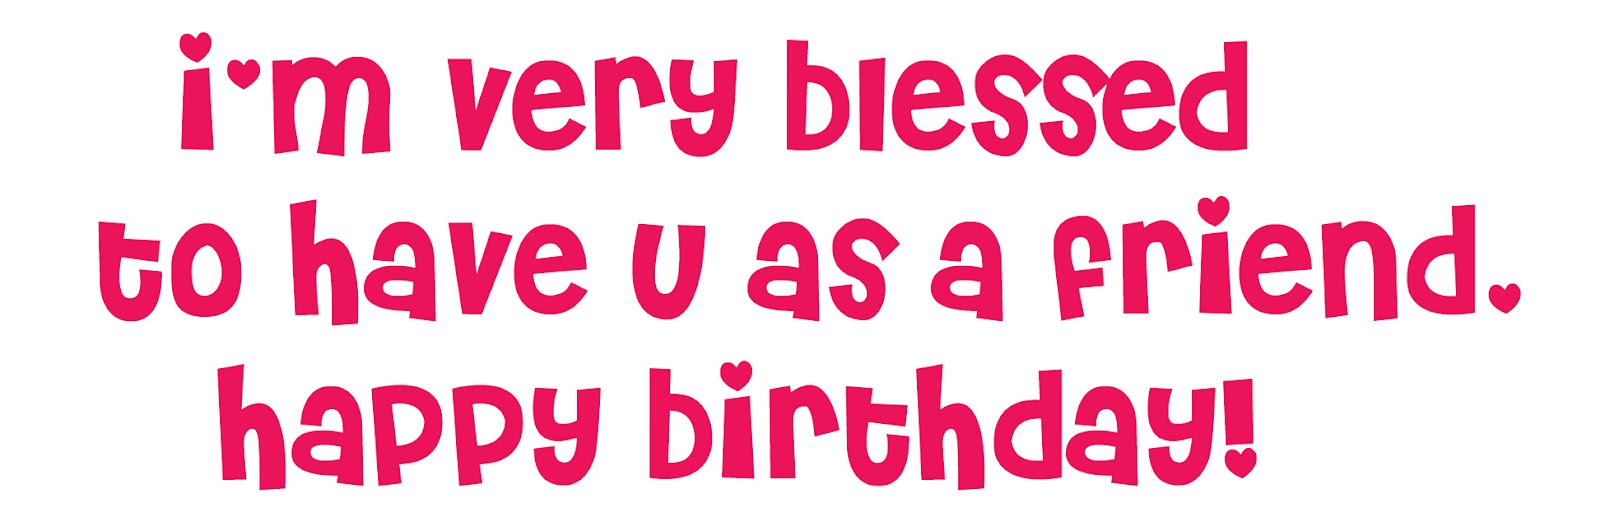 Free happy birthday clipart for facebook jpg library download Happy Birthday Friend Clipart - Clipart Kid jpg library download